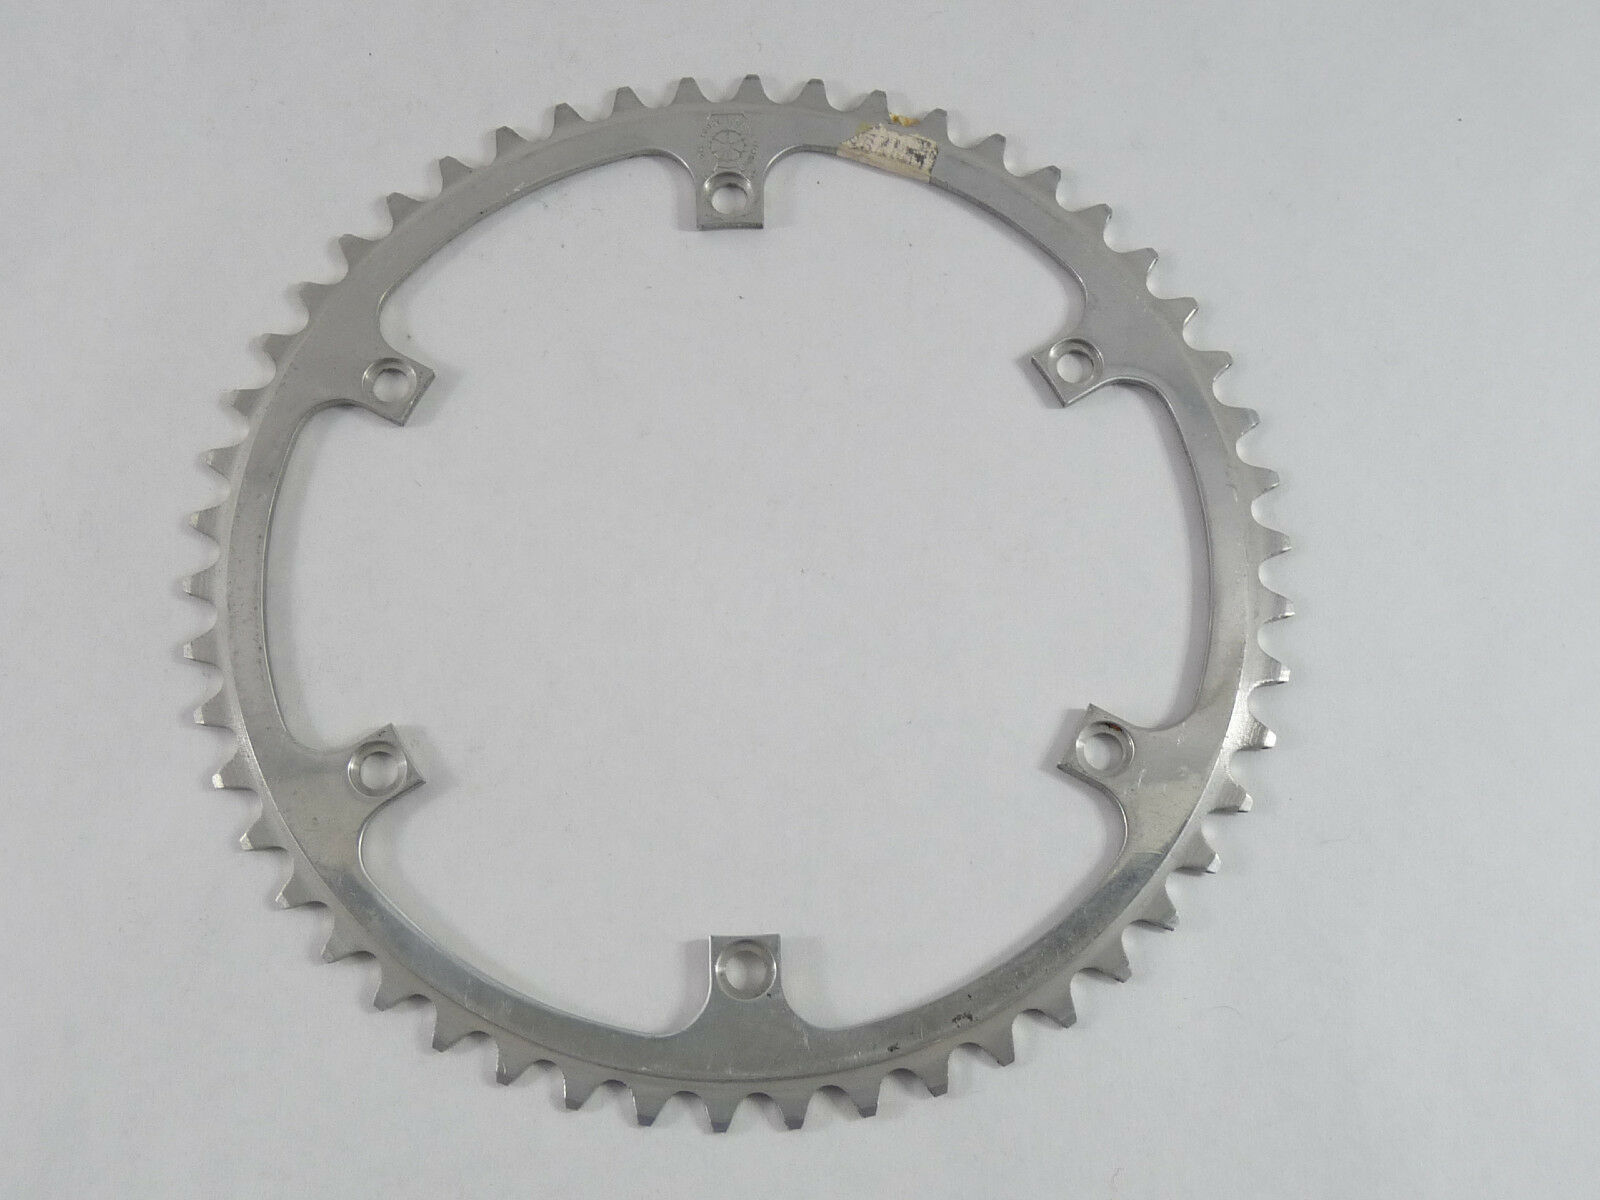 TA. Chainring 50T Criterium Outer Road Professional REF 106 TA Vintage Bike NOS